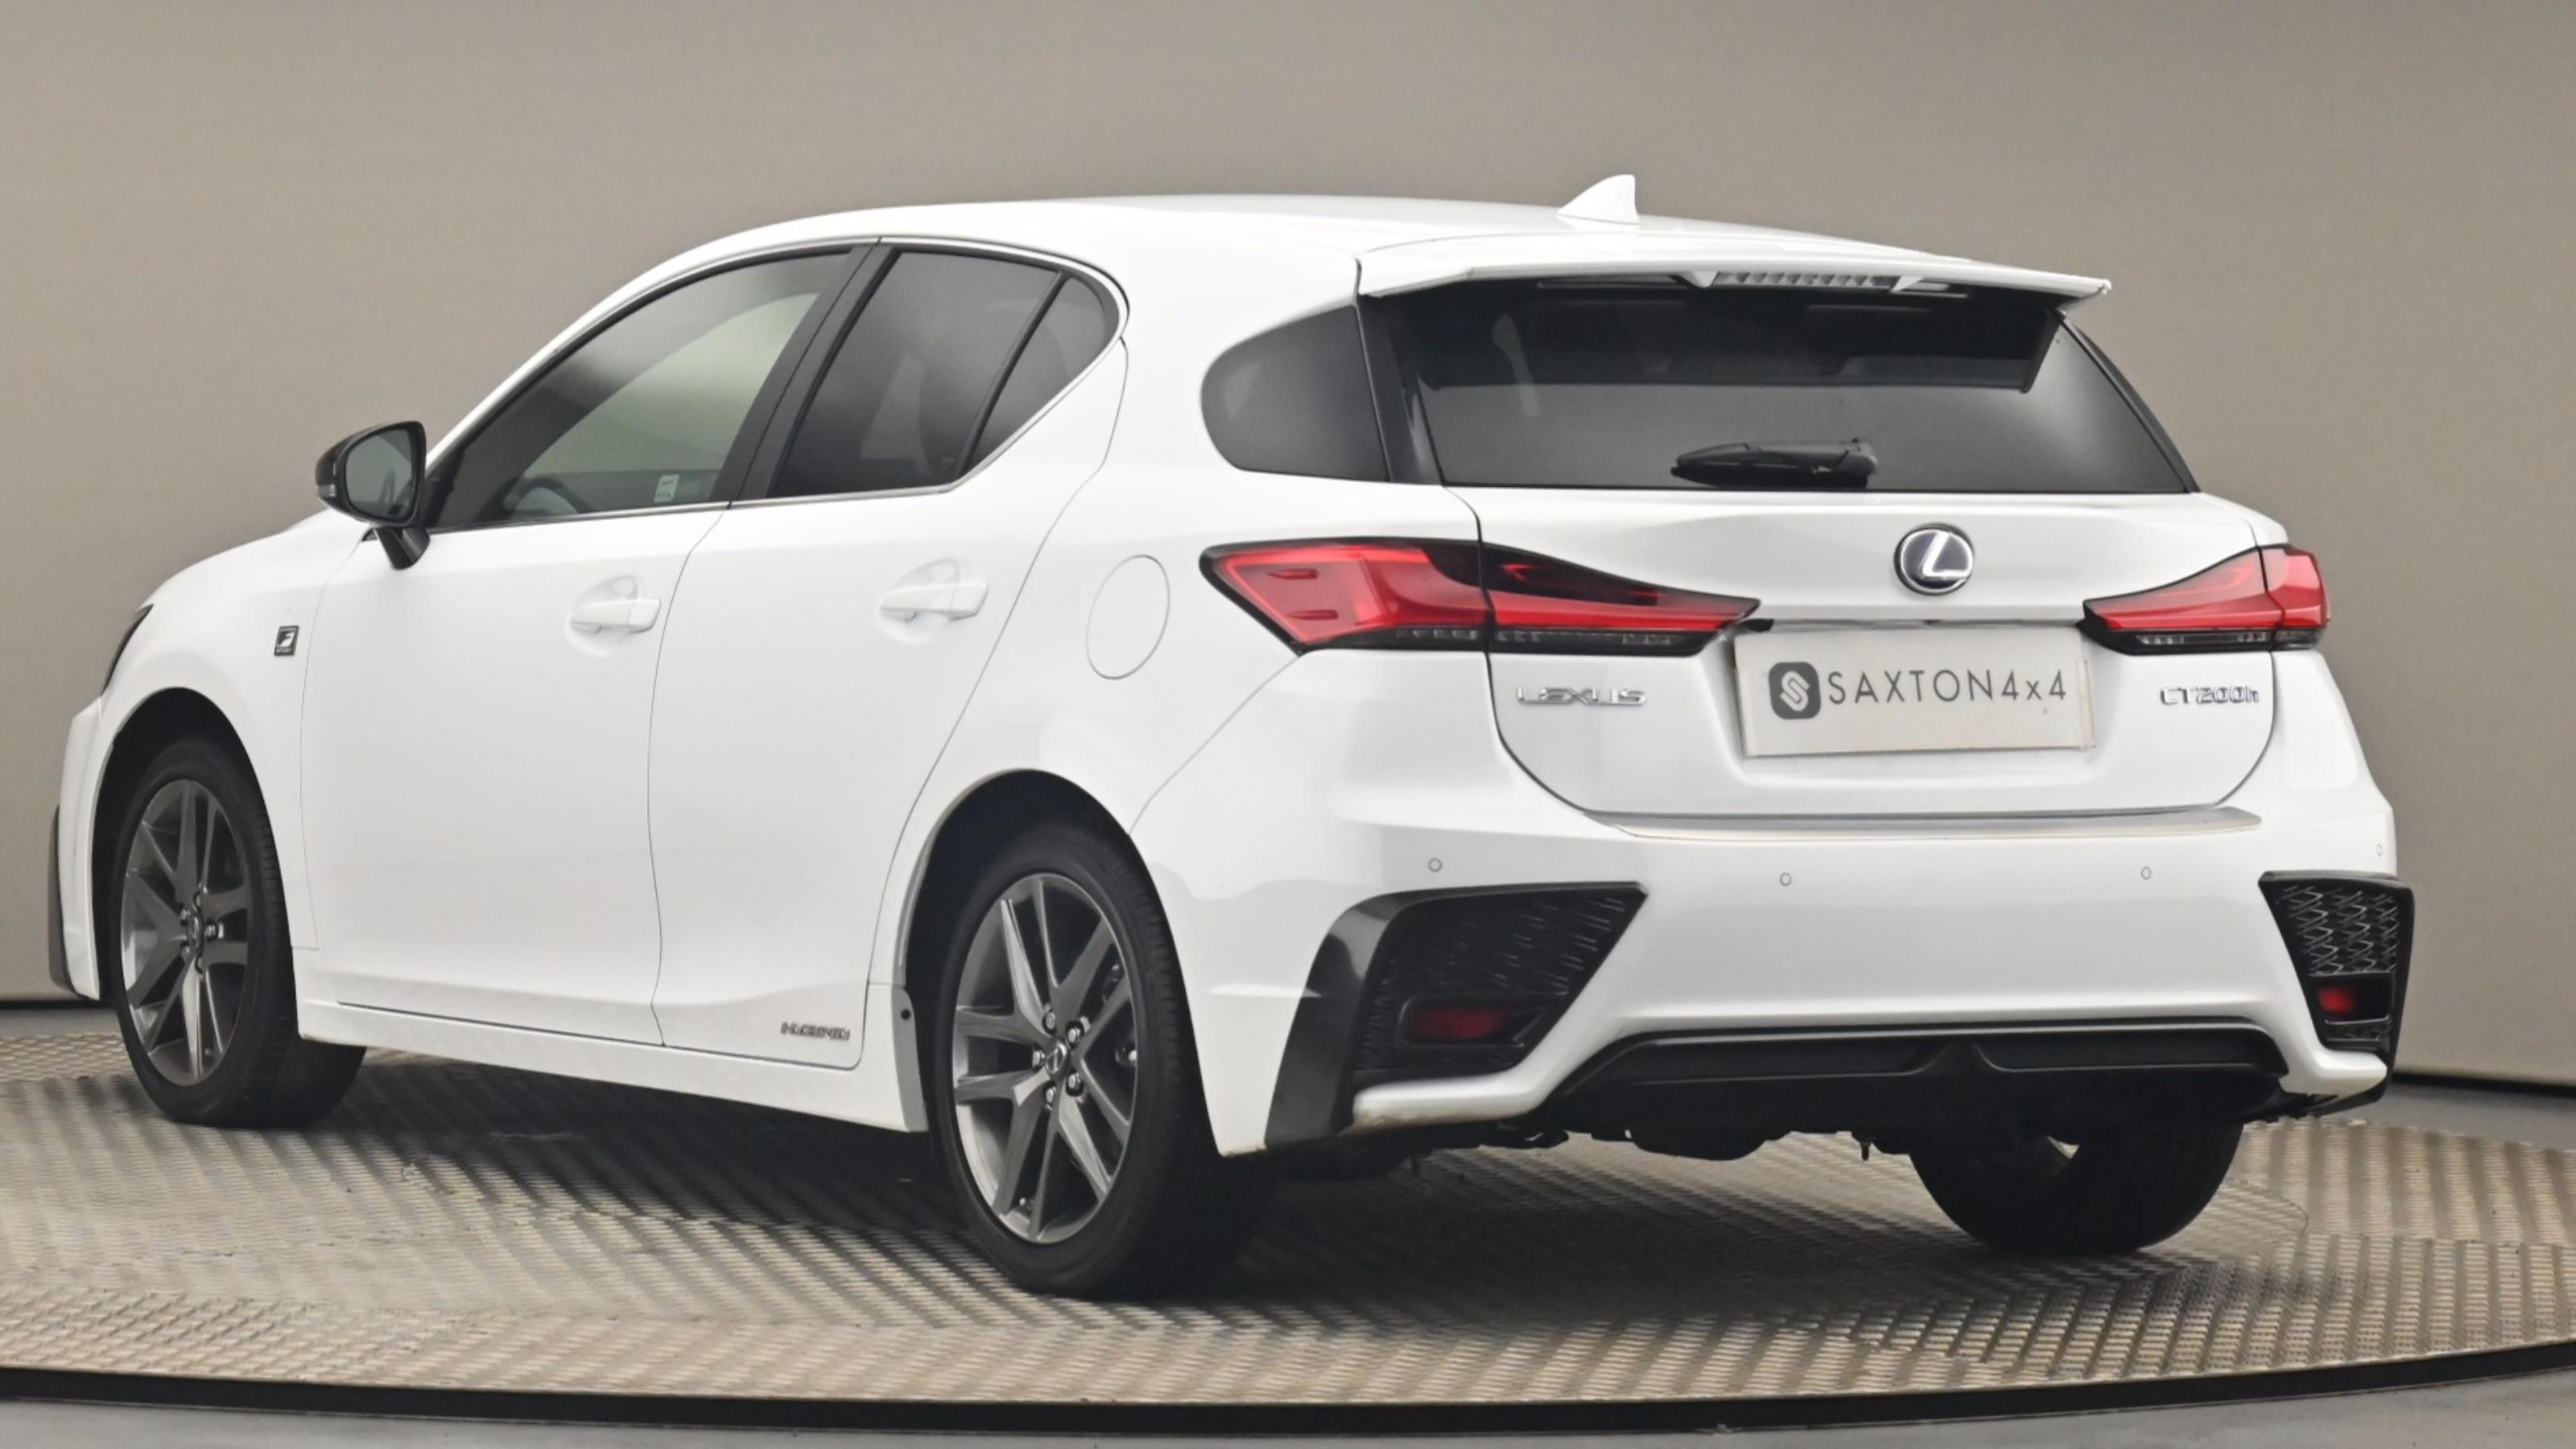 Used 2019 Lexus CT 200h 1.8 F-Sport 5dr CVT [Leather] WHITE at Saxton4x4